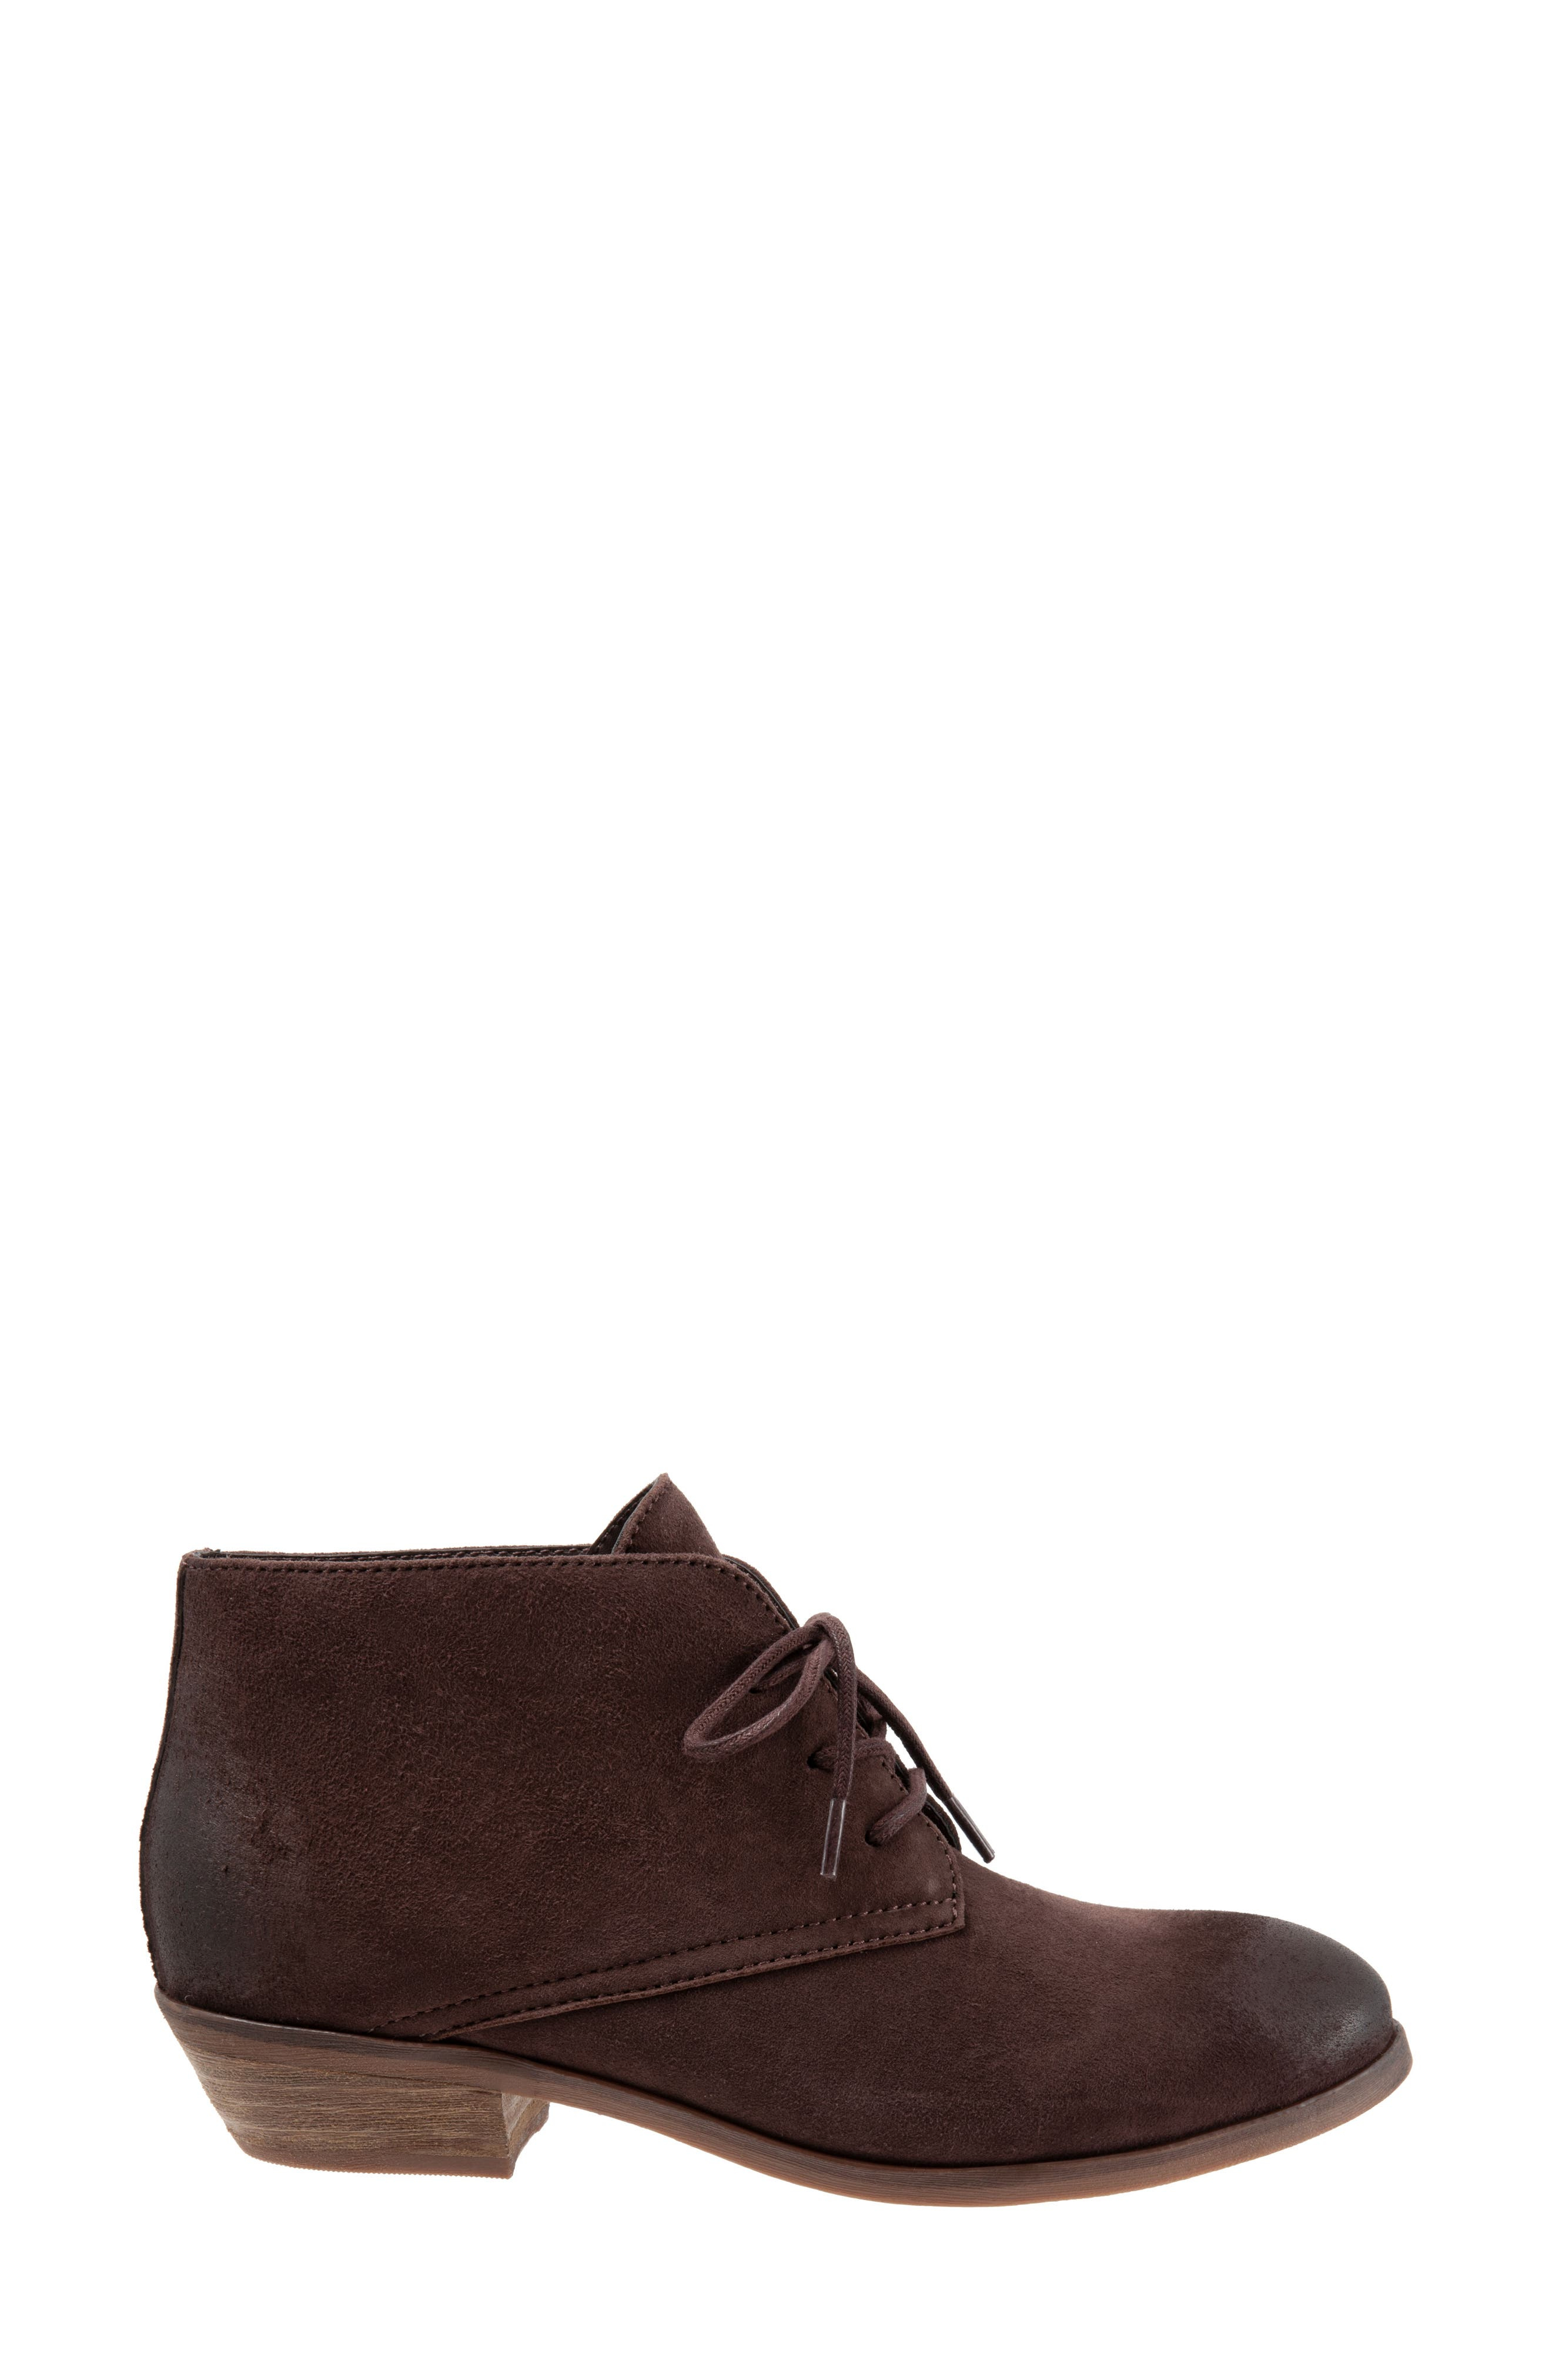 'Ramsey' Chukka Boot,                             Alternate thumbnail 3, color,                             DARK BROWN LEATHER